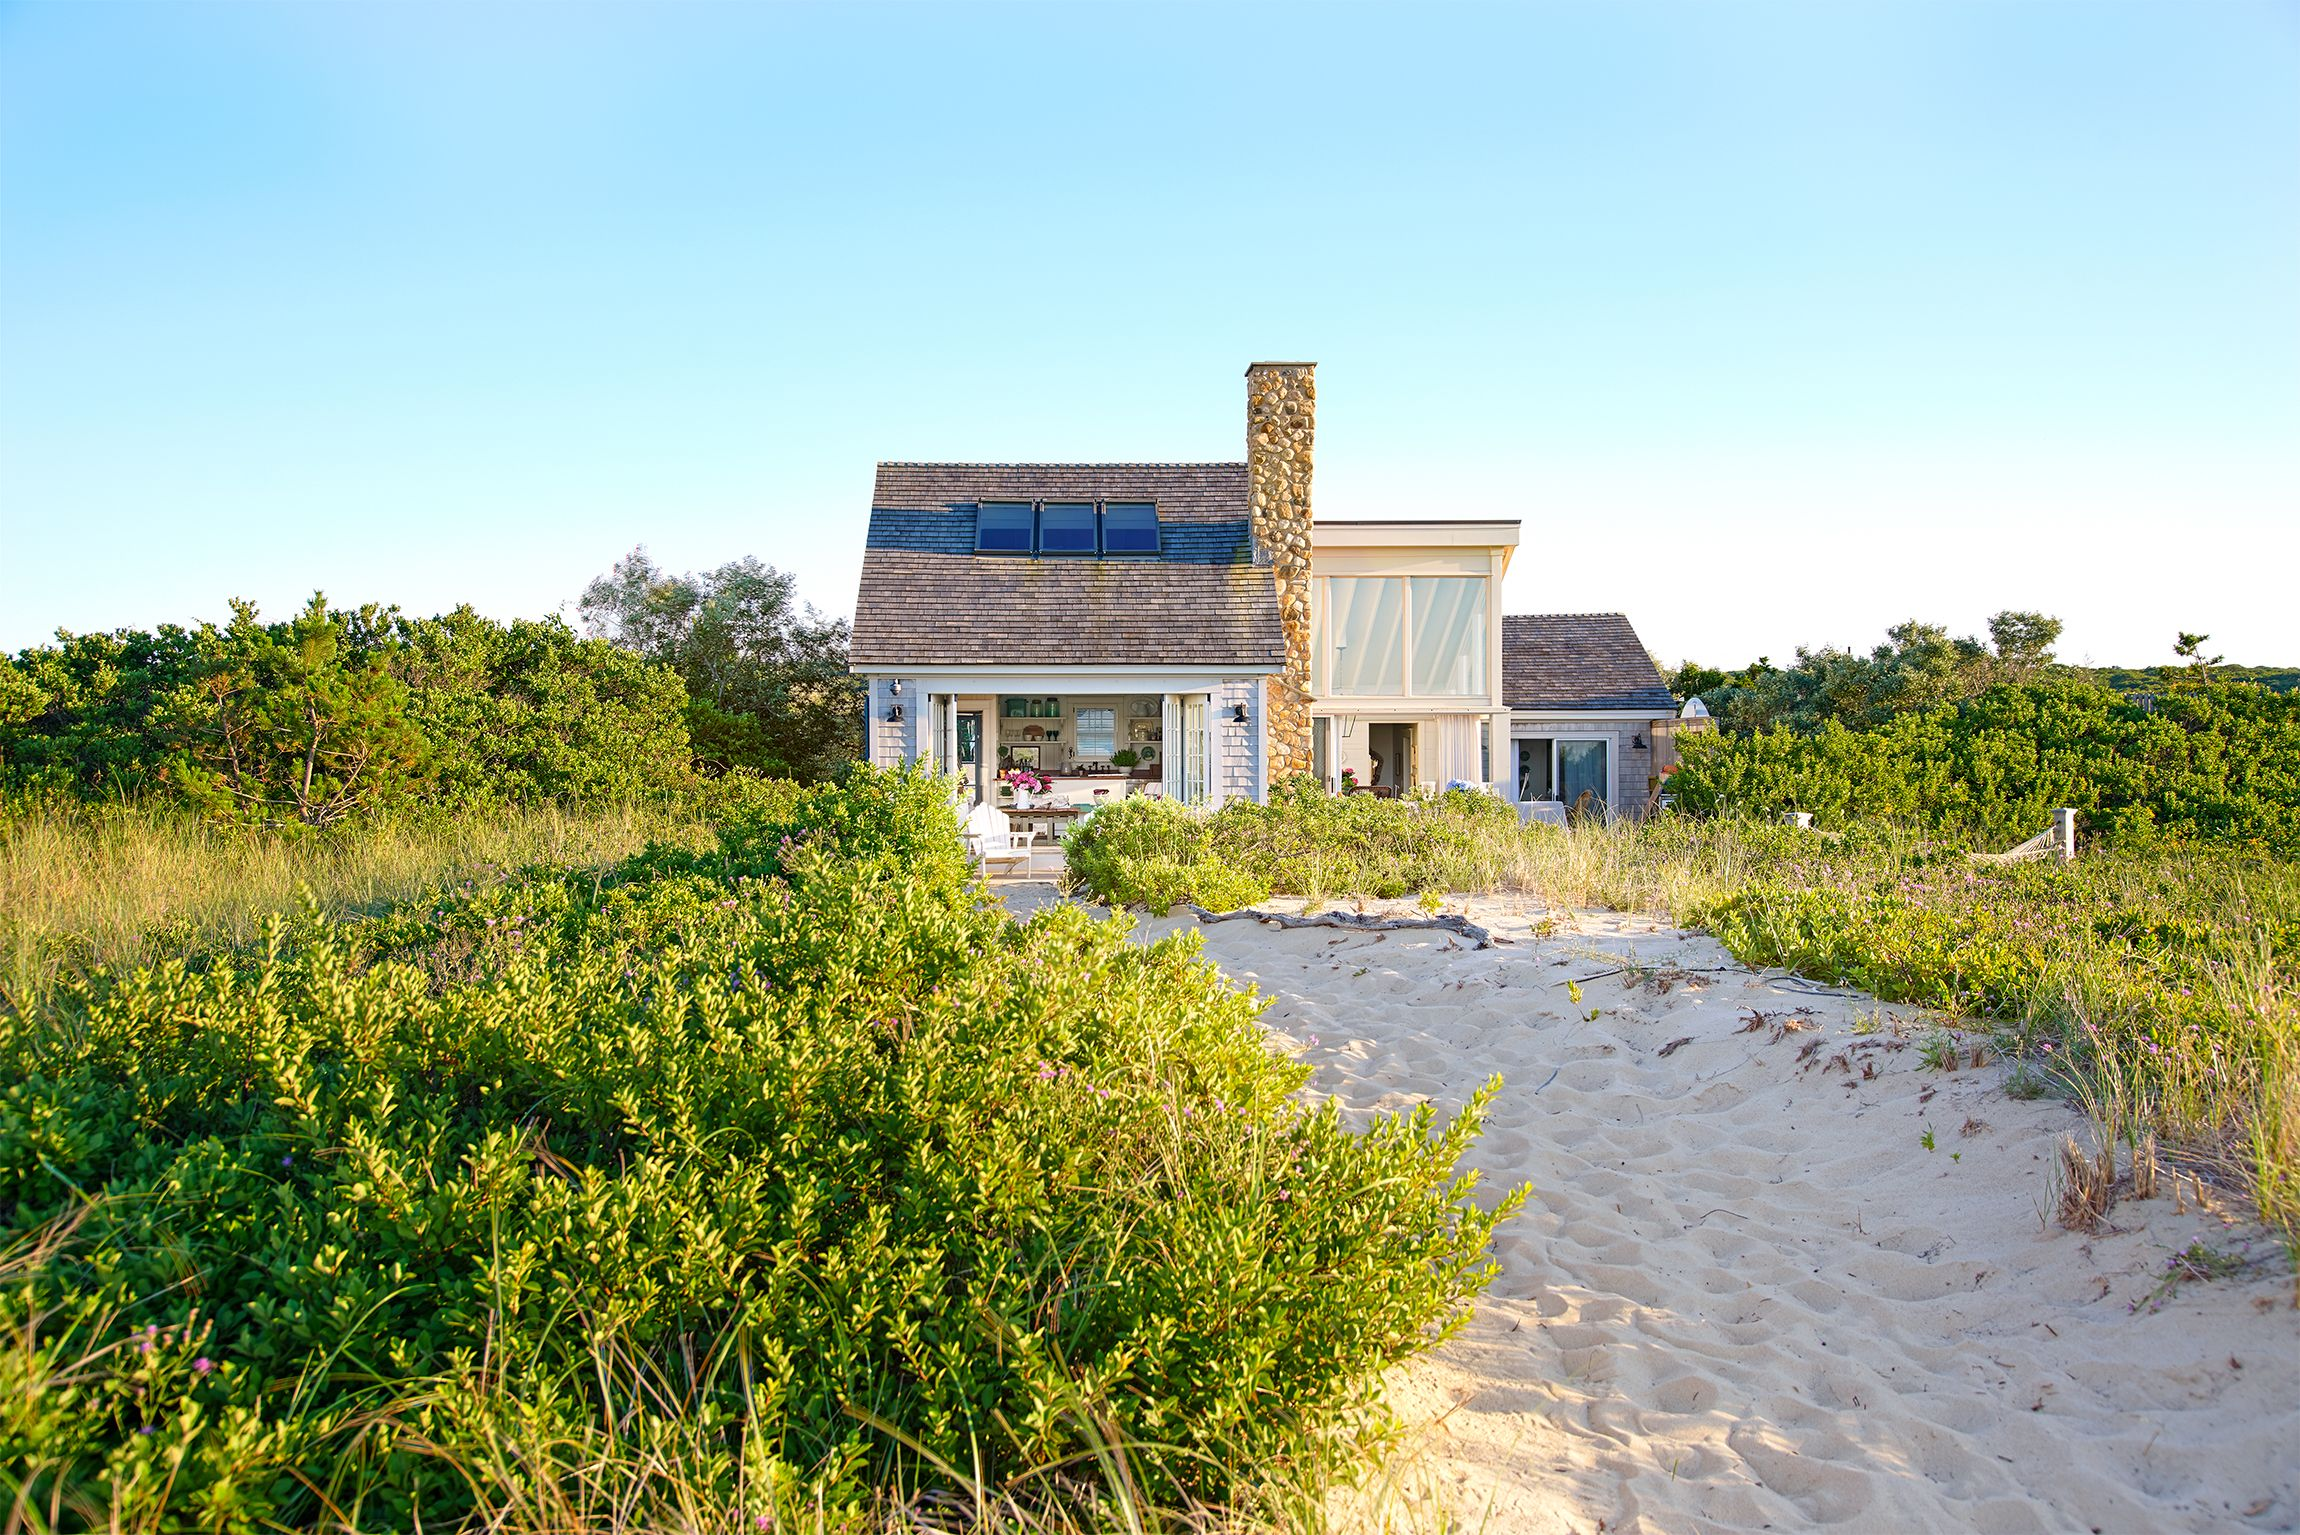 10 Colorful Beach House Decorating Ideas Martha Vineyards - Summer-decorating-ideas-with-flowers-for-your-loft